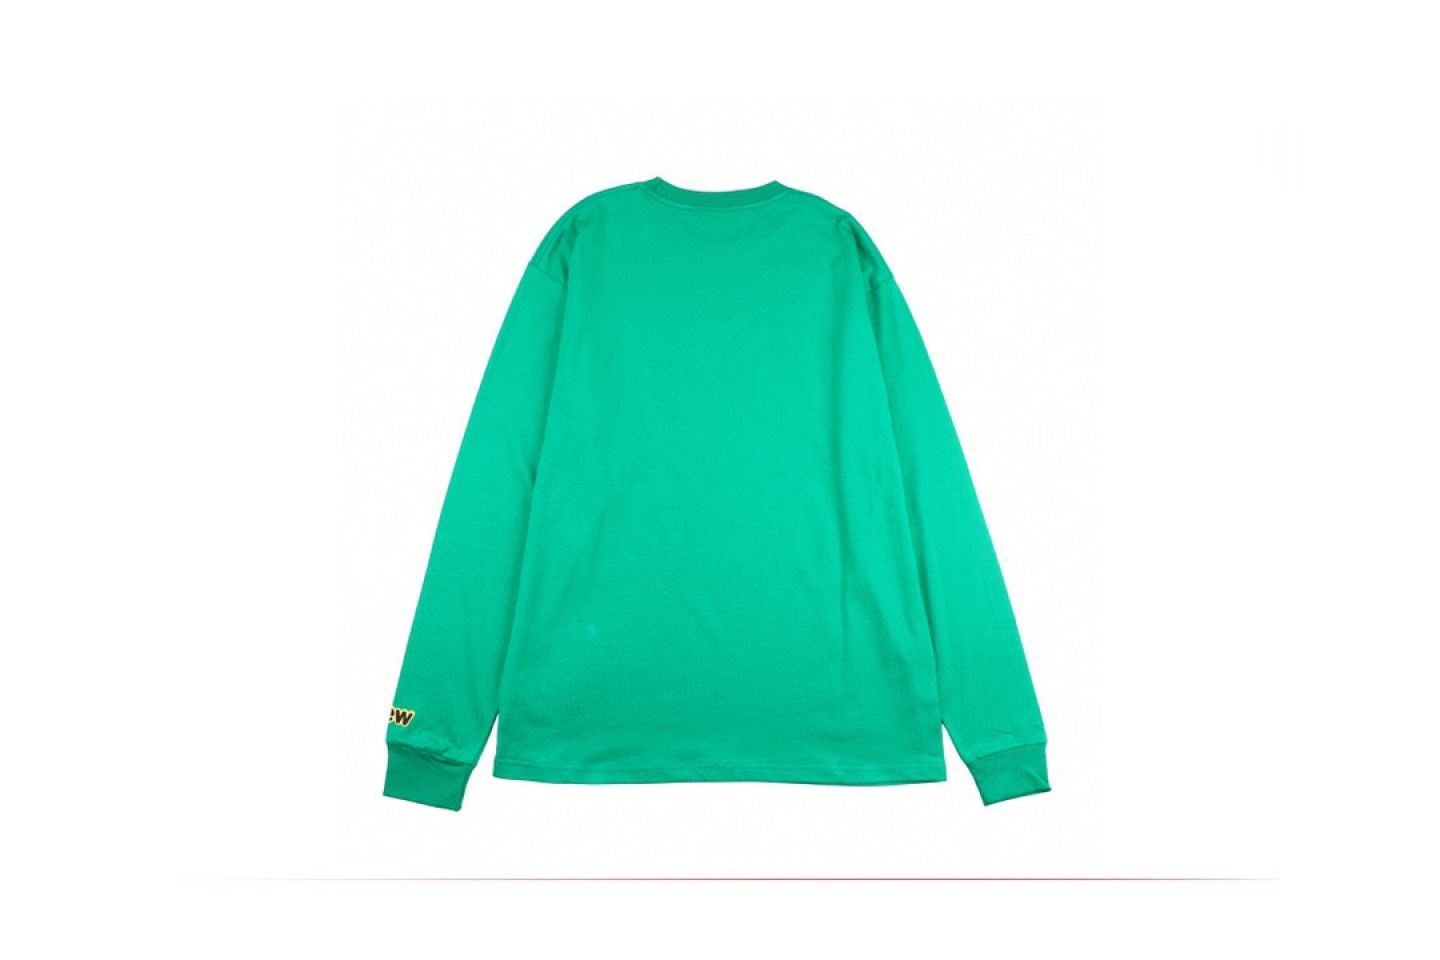 "Shirt Drew House 2020 classic smiley face long sleeve T-shirt ""Green"" 5 drew_house_2020_classic_smiley_face_long_sleeve_t_shirt_green_5"